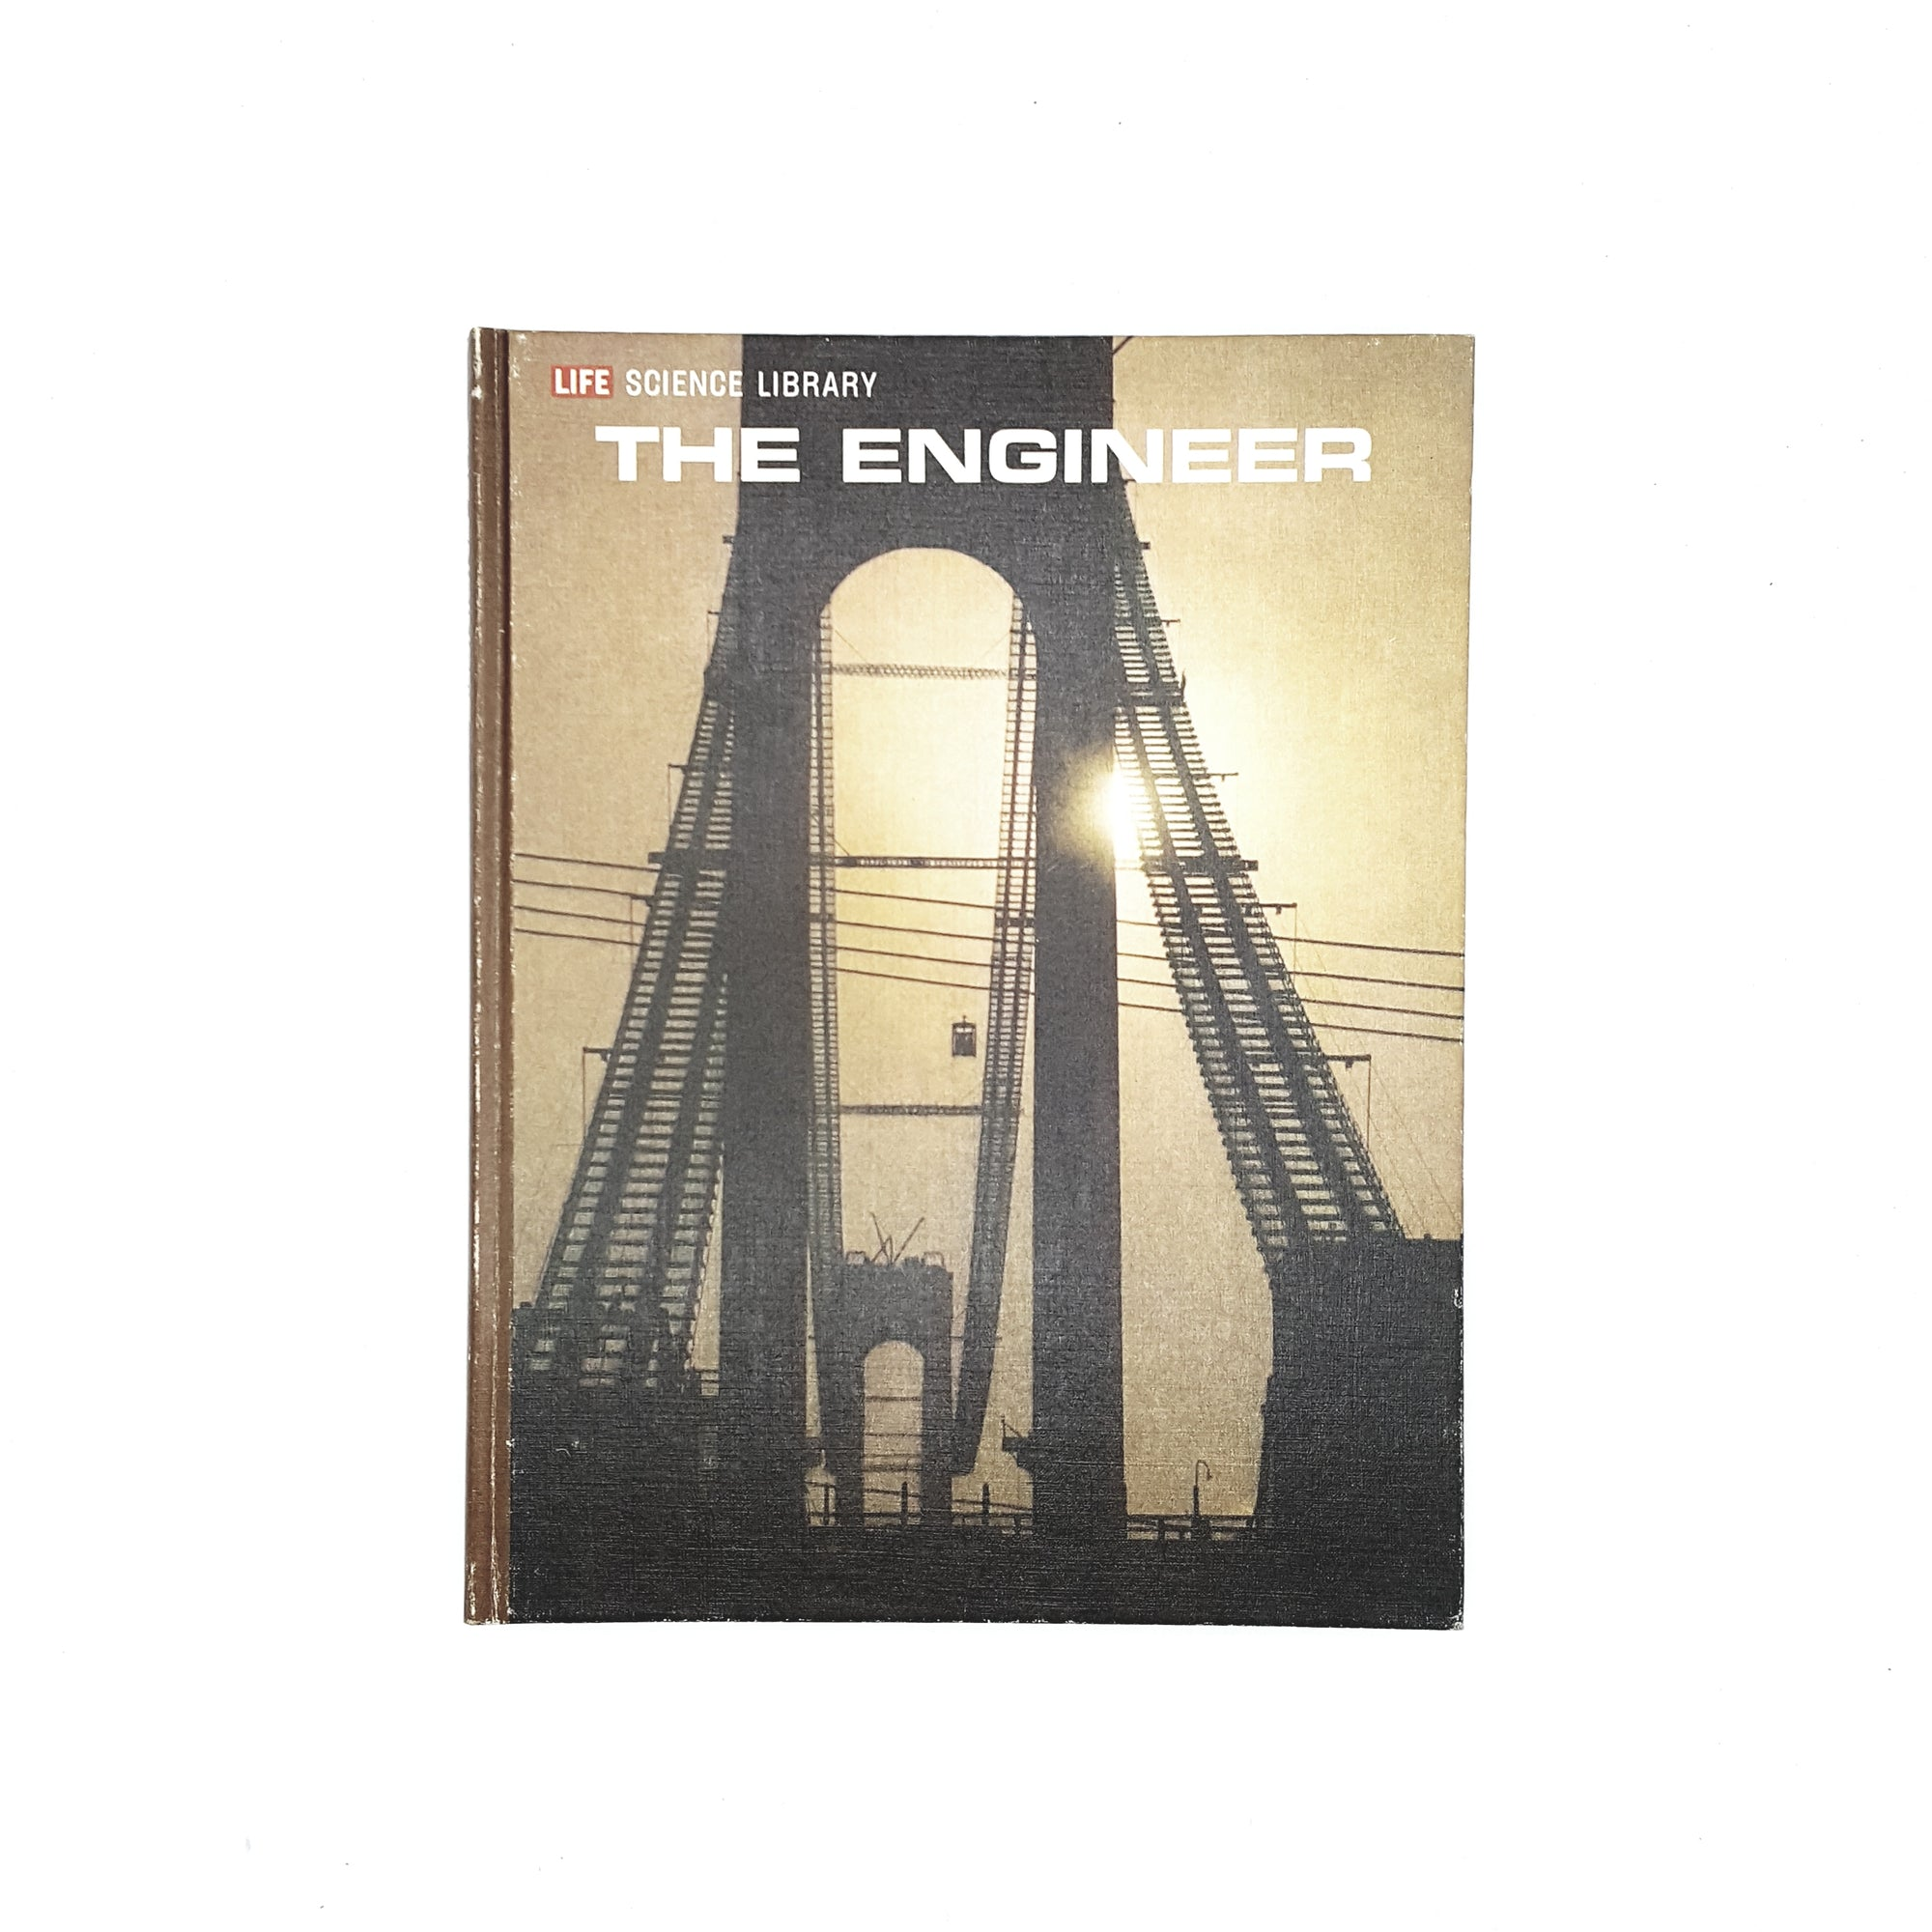 Life Science Library: The Engineer 1975